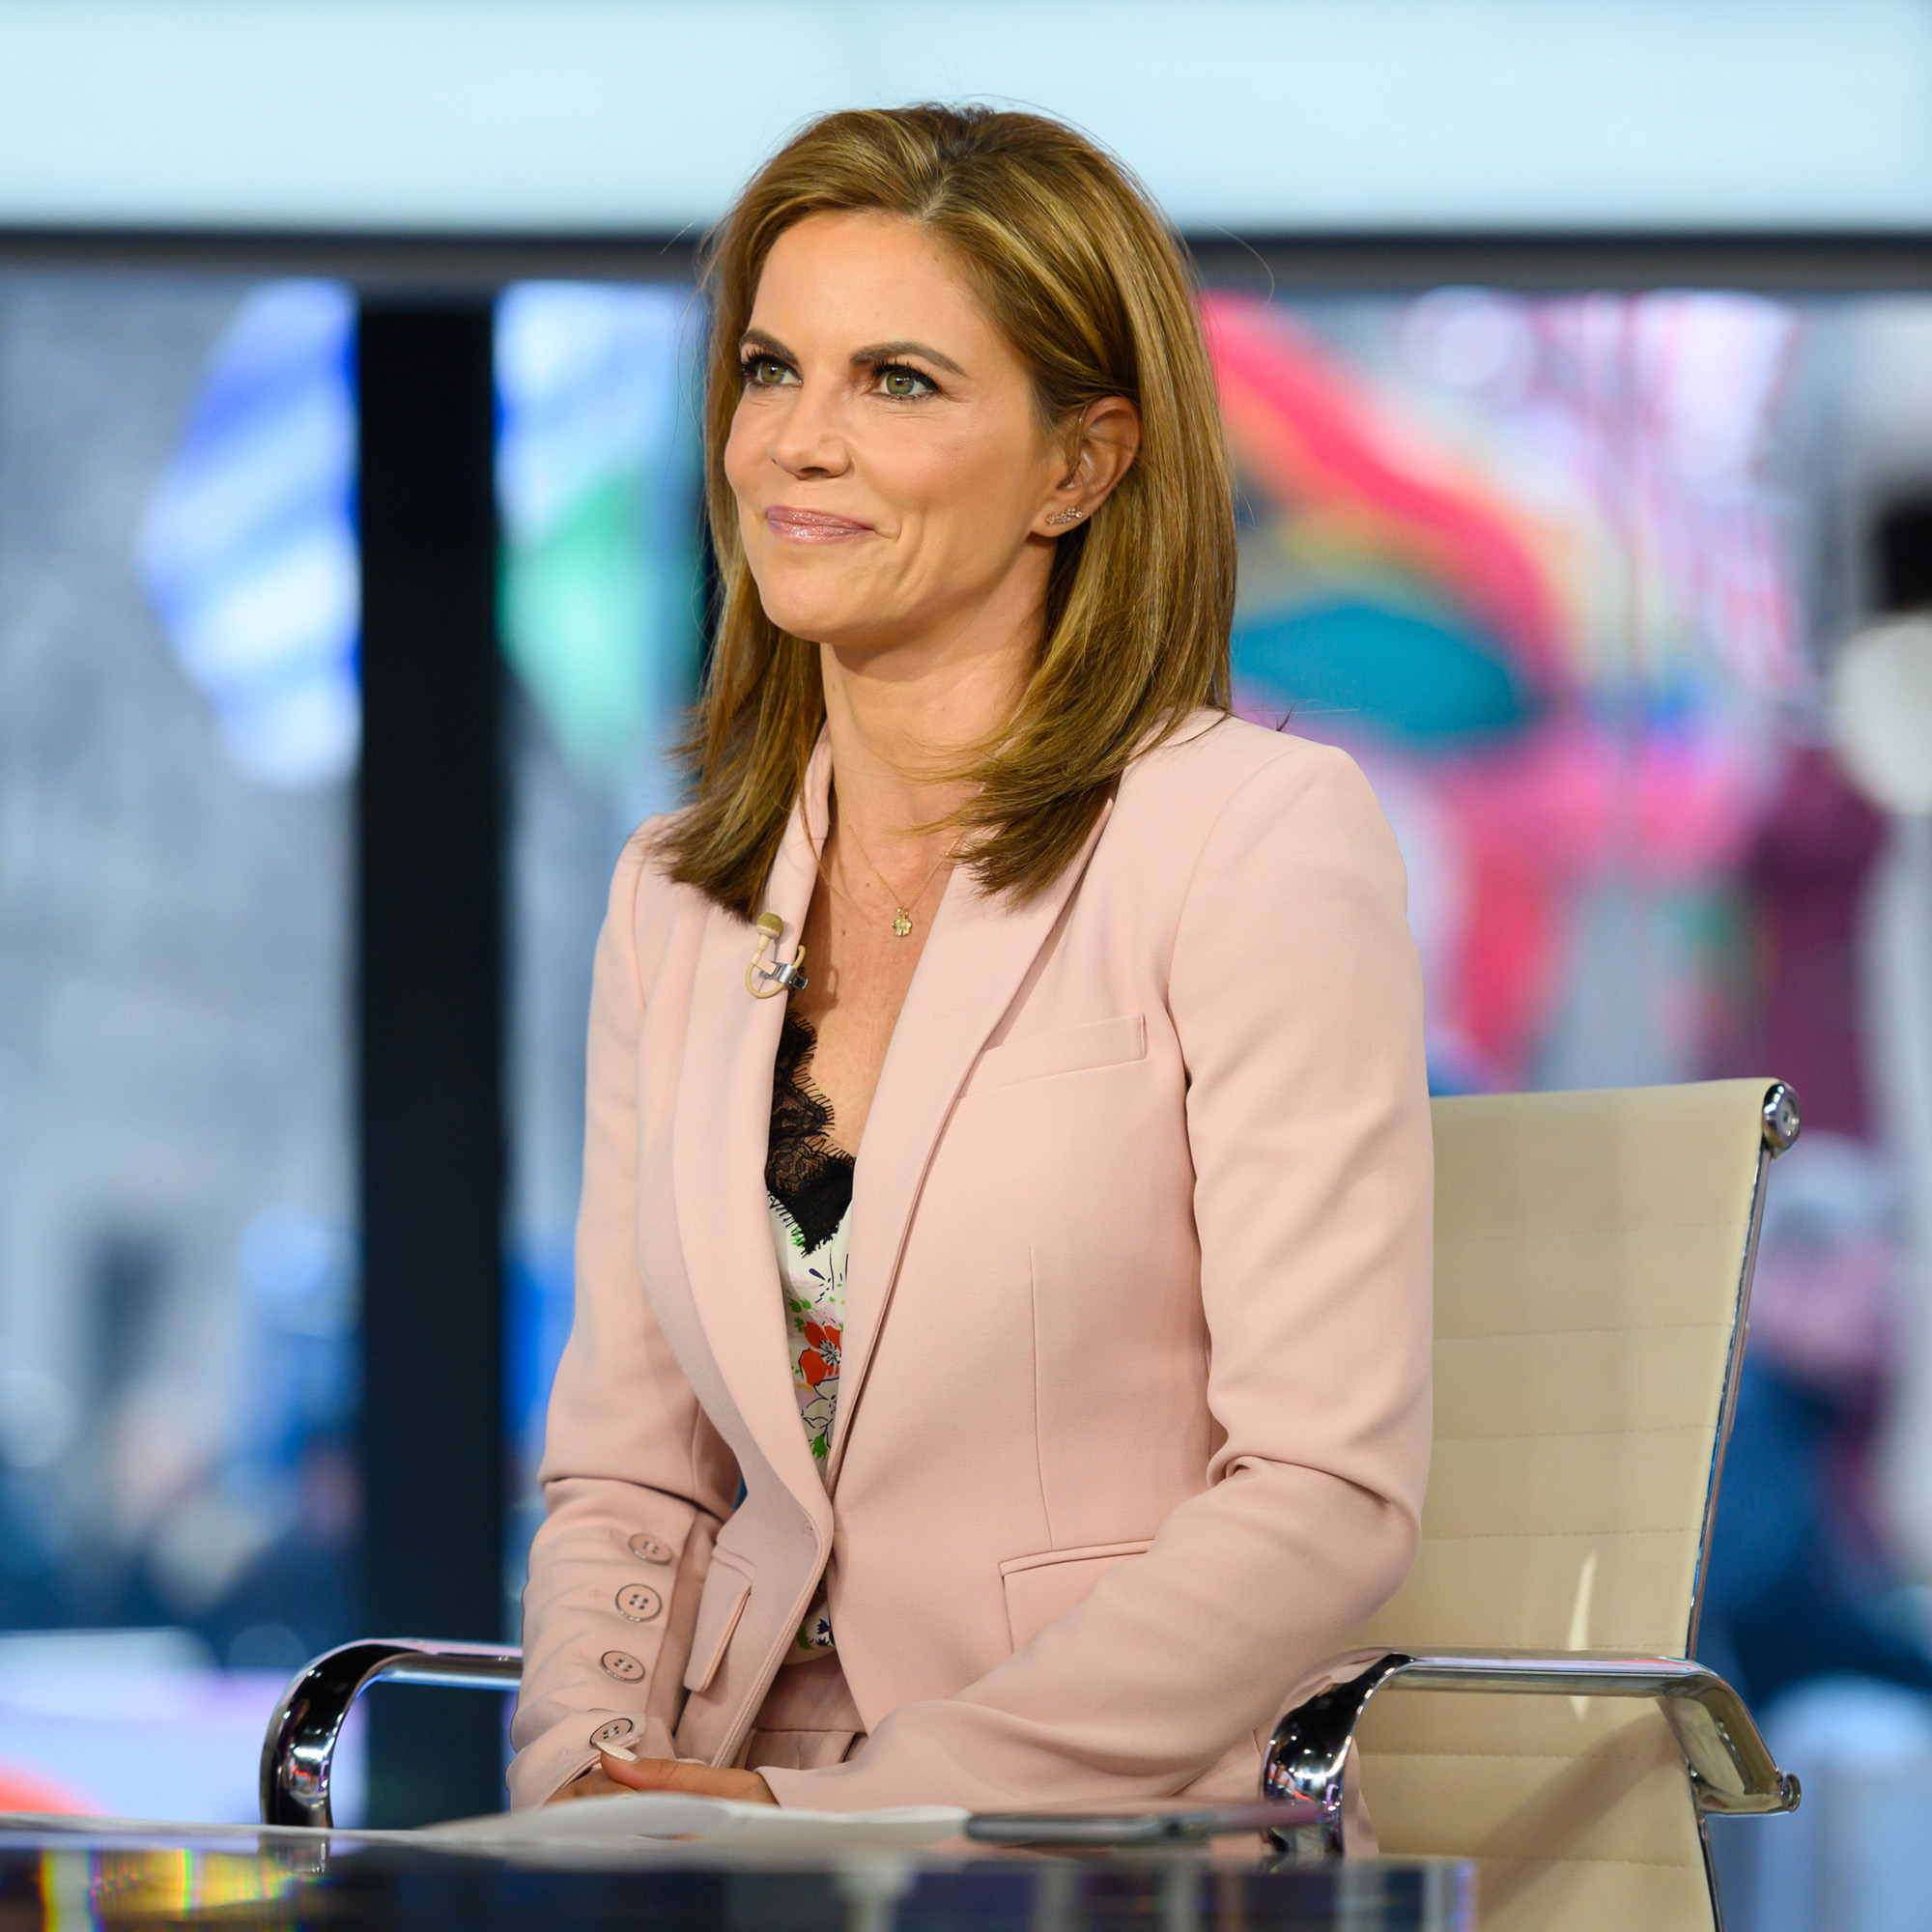 Natilia Metz Natalie Morales Exits Access Hollywood After 3 Years